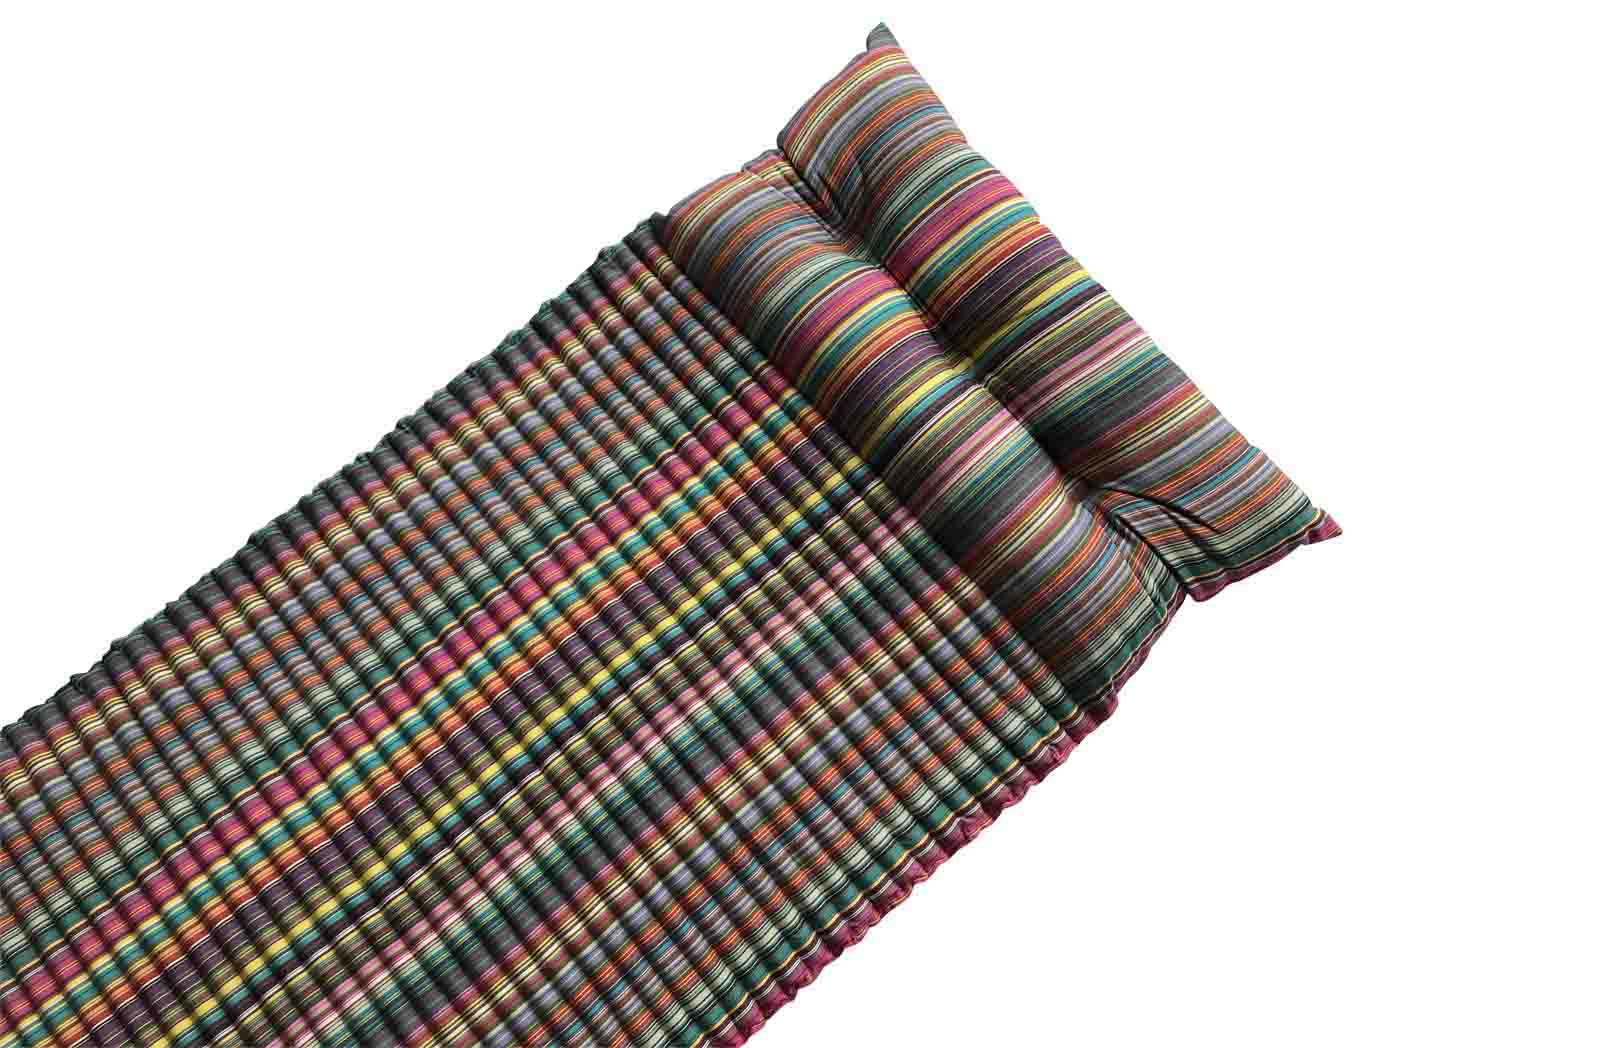 Multi Stripe Beach Mattress | Roll Up Beach Mat with Pillow